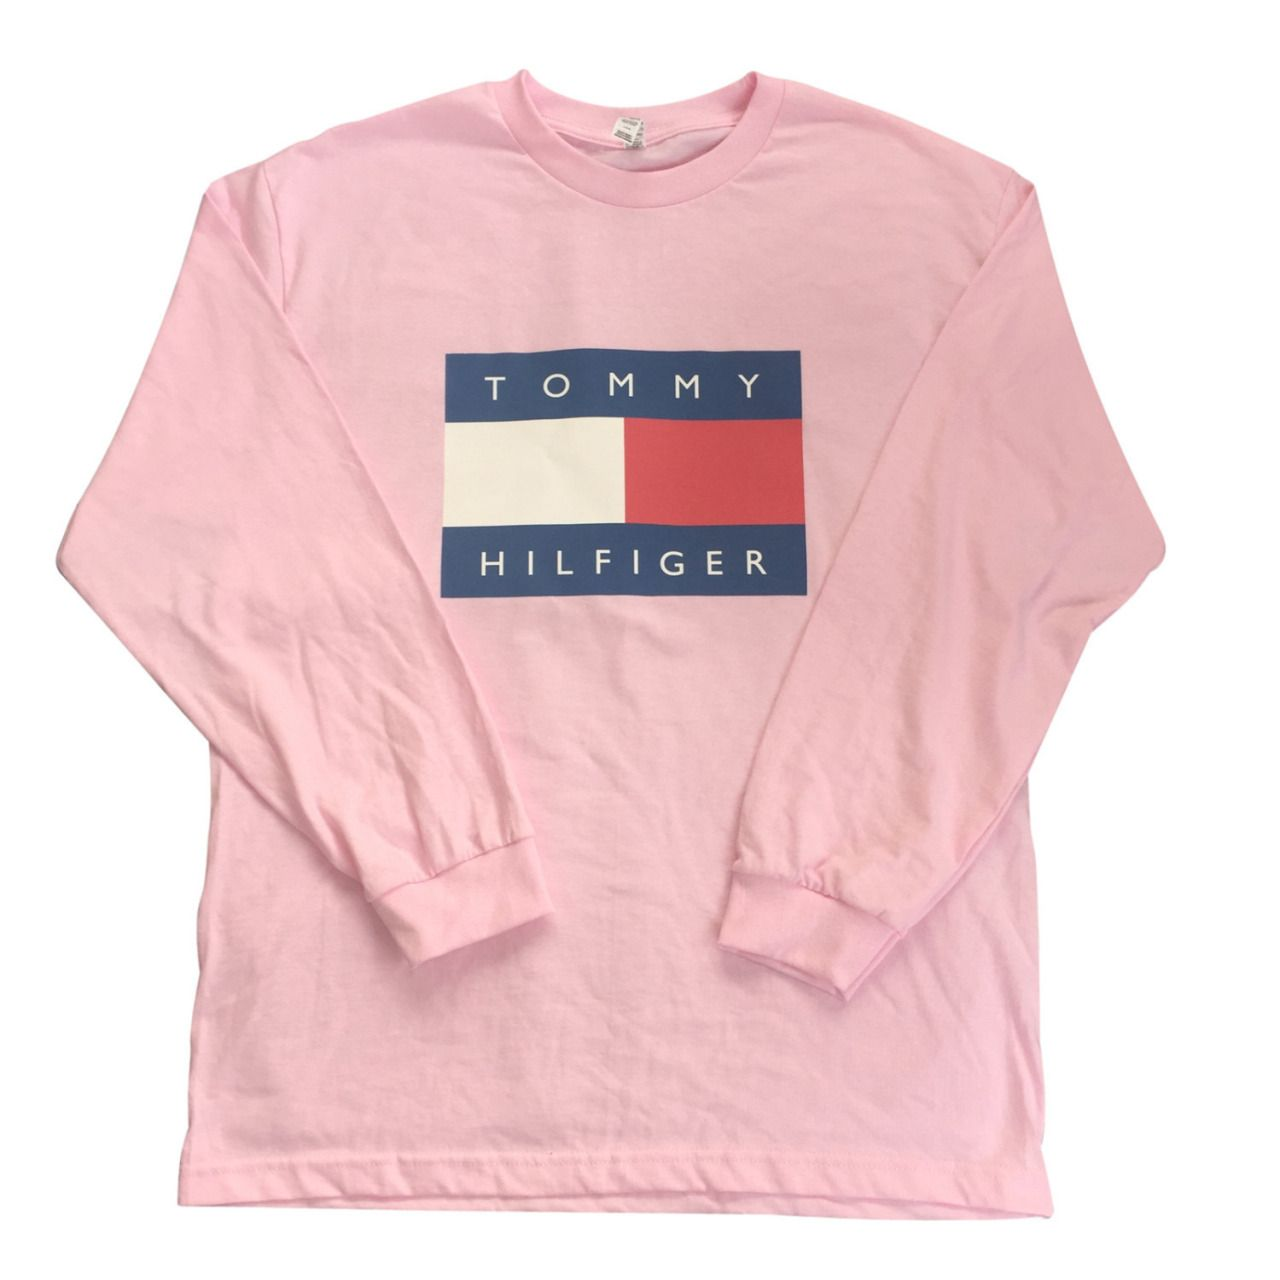 Womens Tommy Hilfiger Clothing | Dresses, Knitwear, Shirts